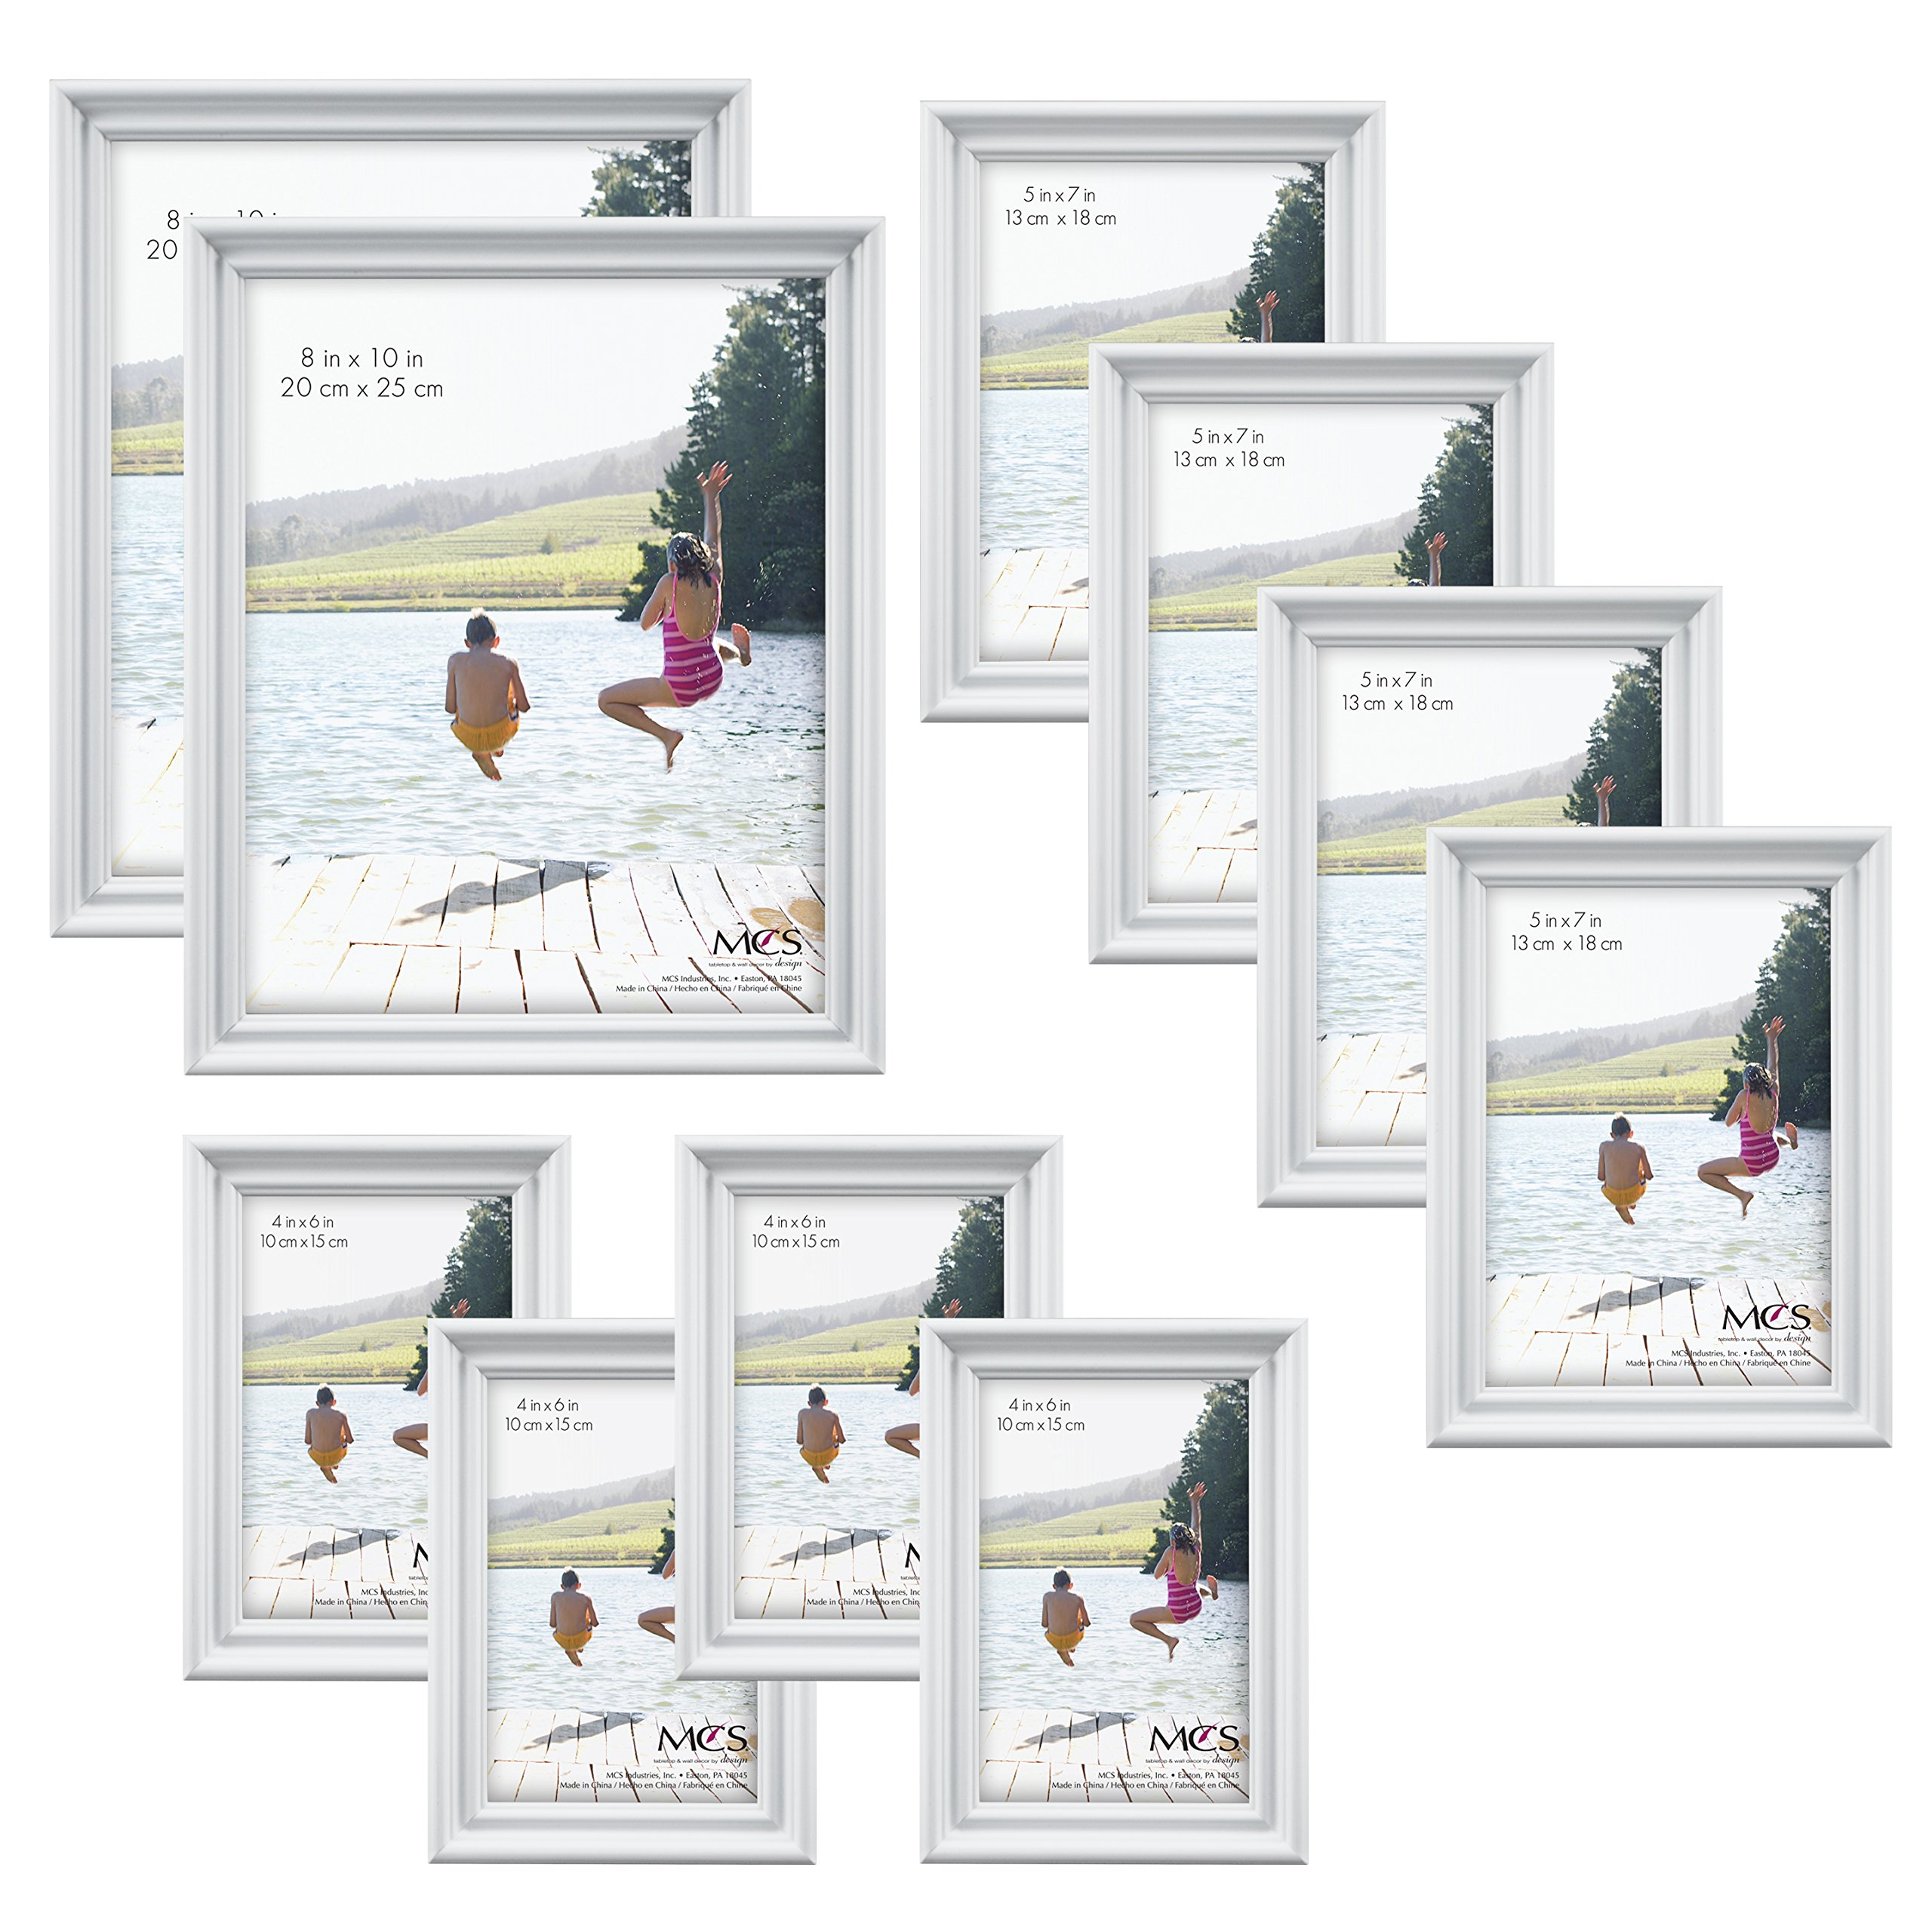 MCS 10pc Picture Frame Value Set - Two 8x10 in, Four 5x7 in, Four 4x6 in, White (65704) by MCS